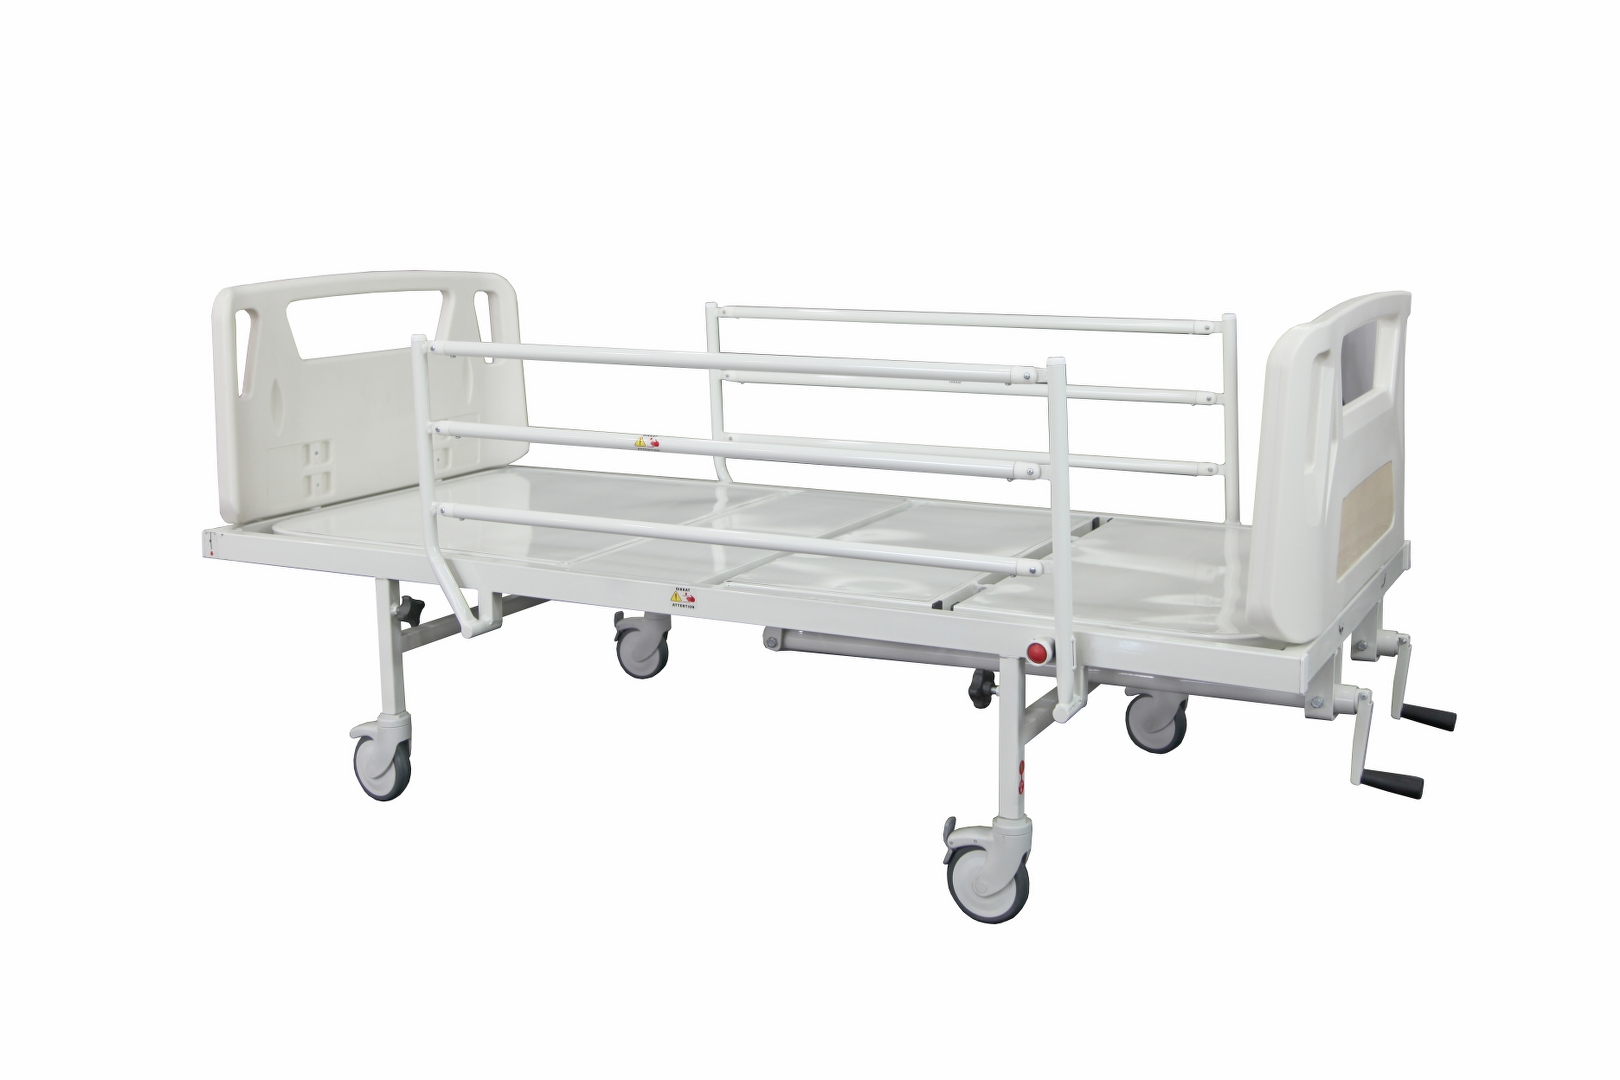 HKM-CC20 MECHANICAL HOSPITAL BED WITH 2 ADJUSTMENT